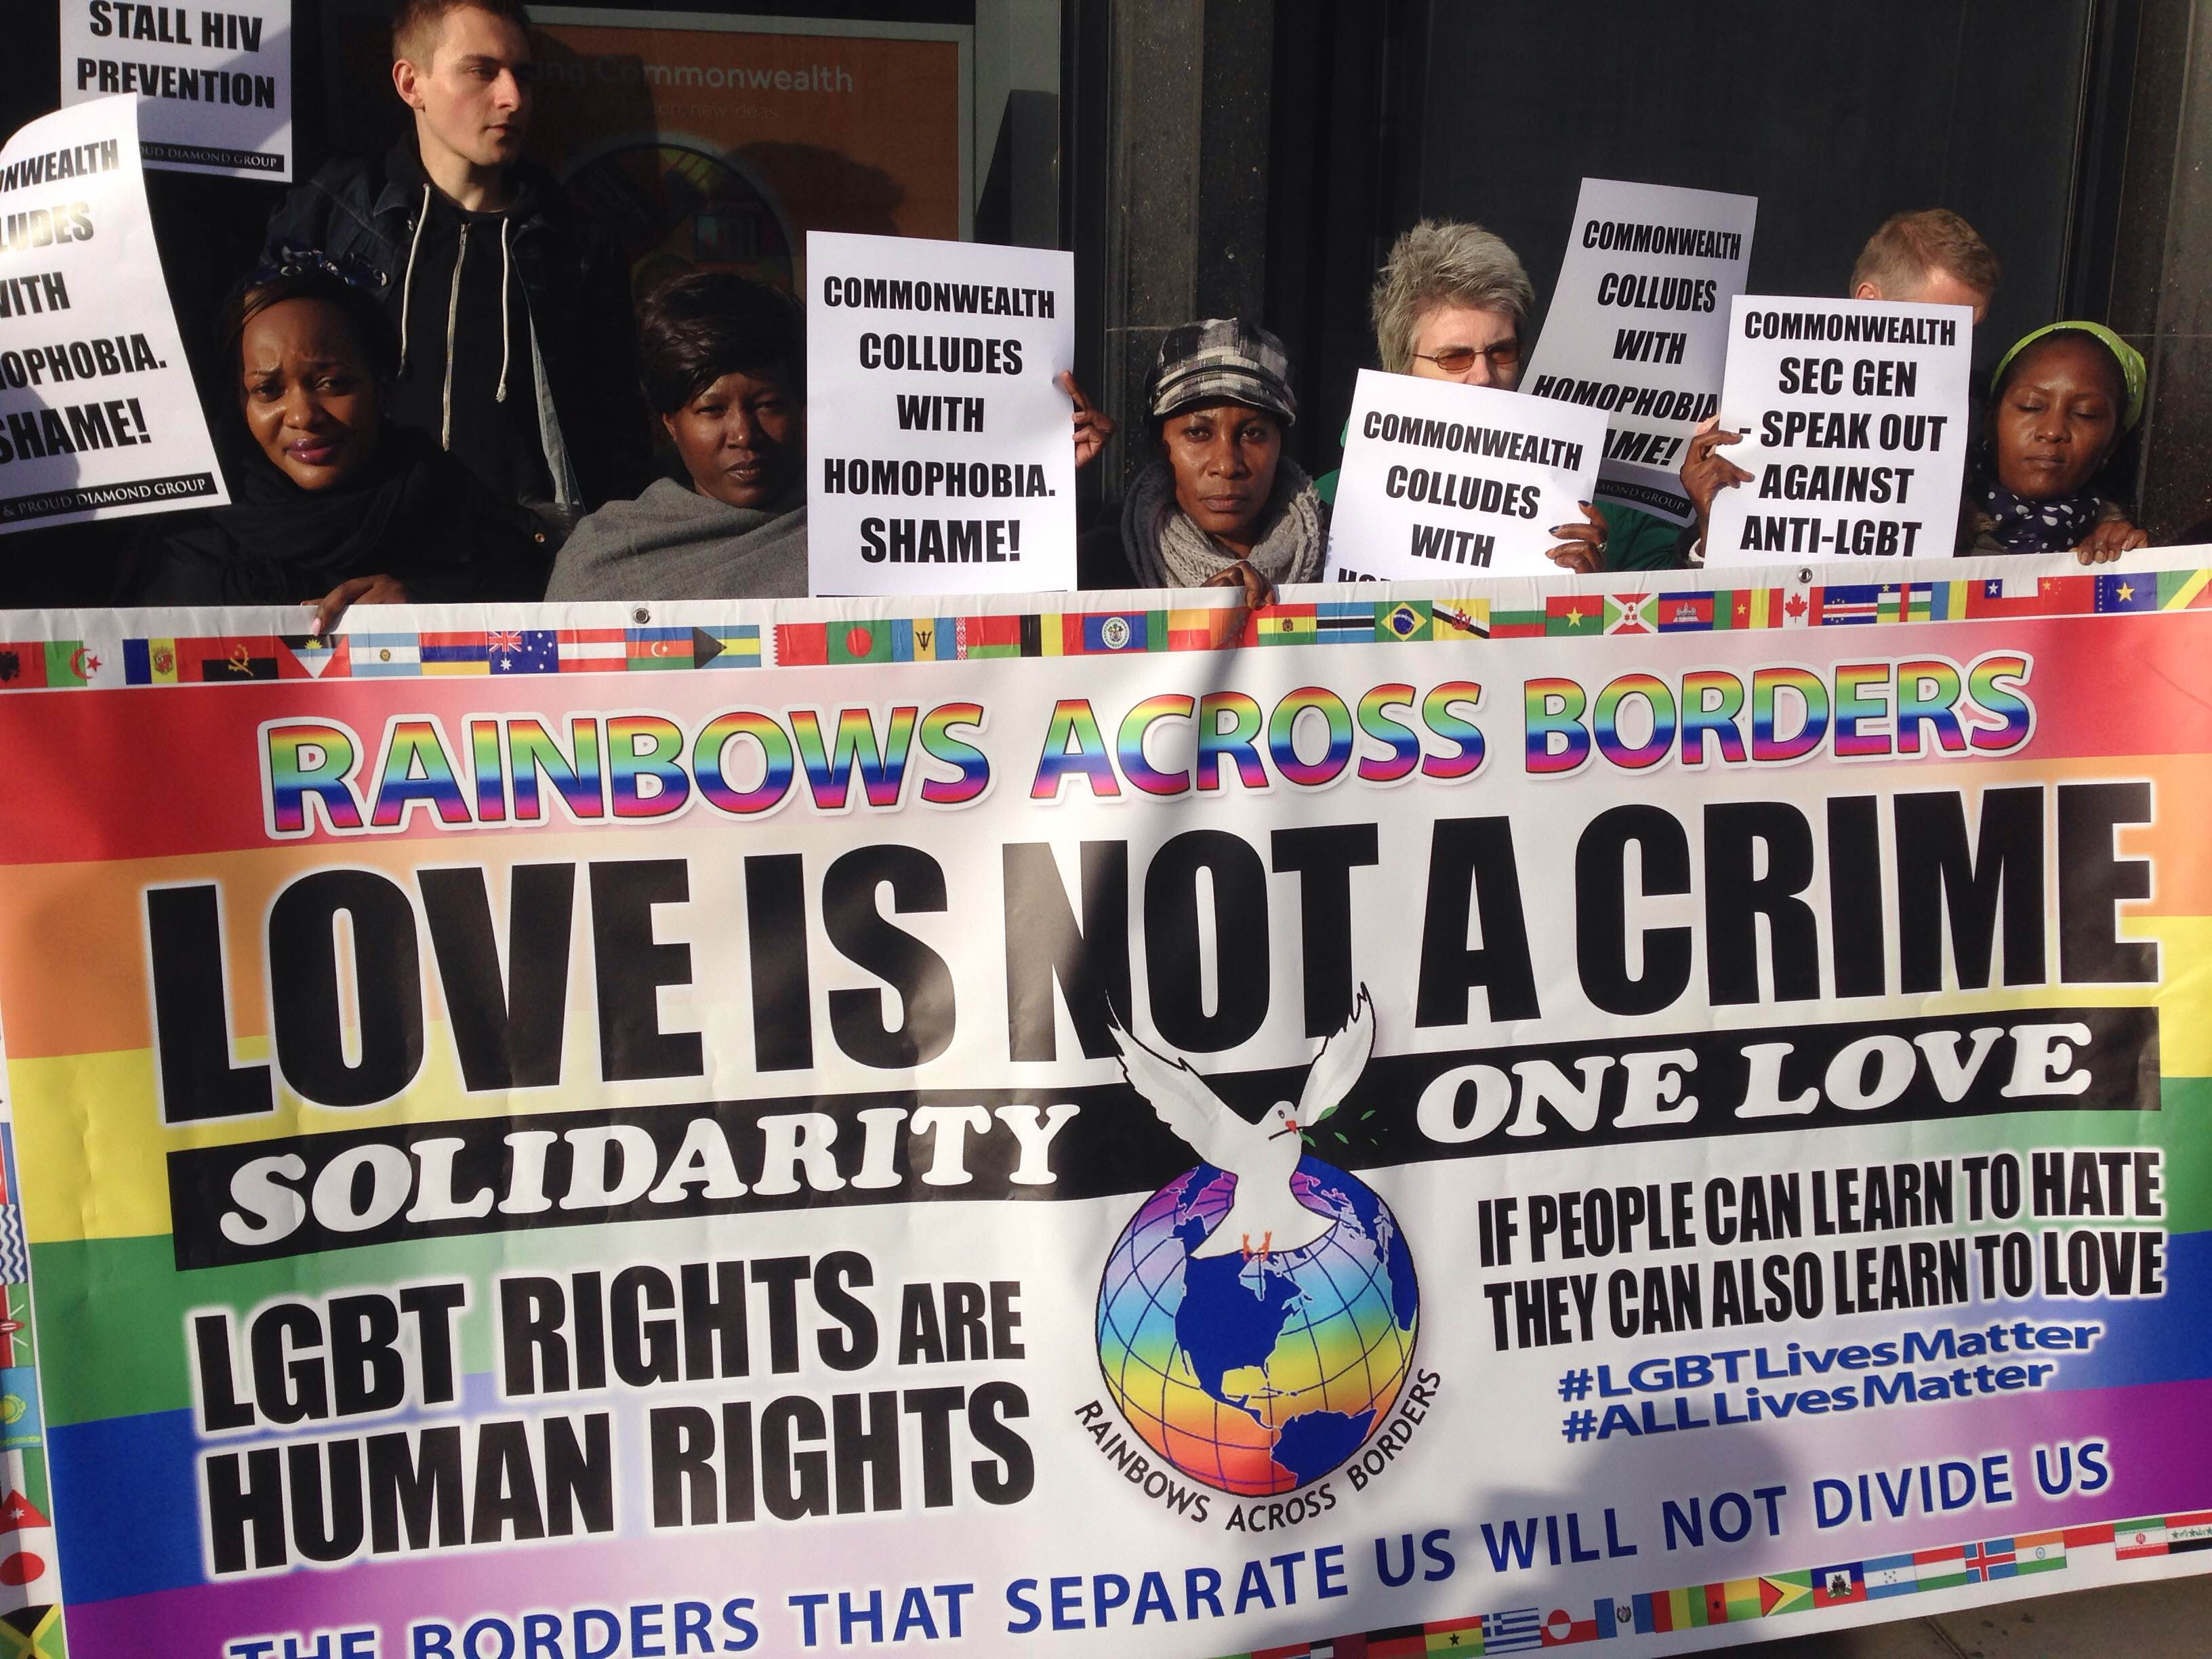 """""""Love Is Not A Crime,"""" say demonstrators in London on Nov. 25, seeking repeal of anti-homosexuality laws. (Photo courtesy of Peter Tatchell Foundation)"""